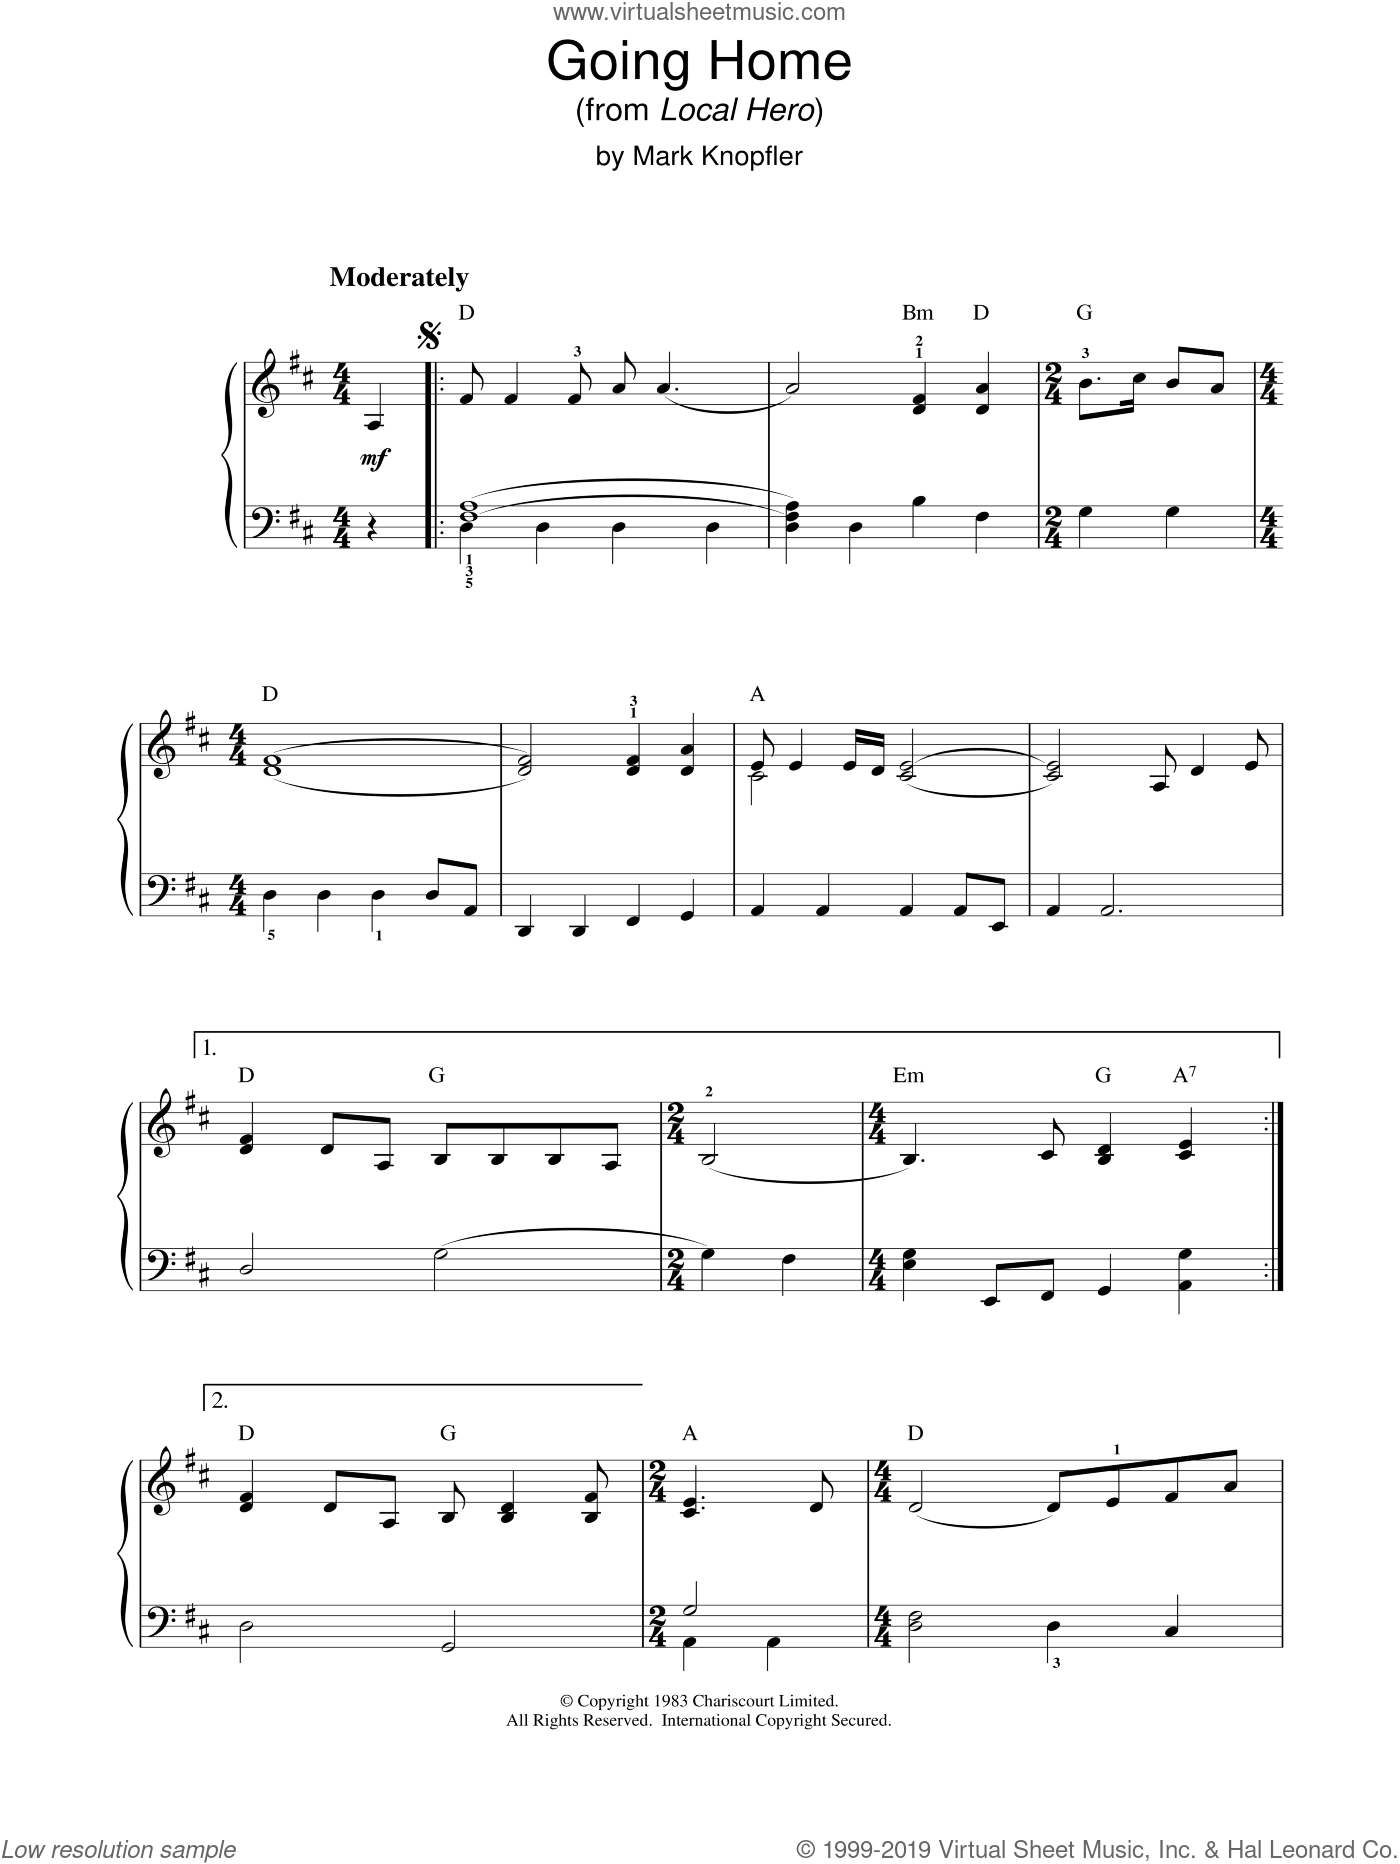 Going Home (from Local Hero) sheet music for piano solo by Mark Knopfler, intermediate